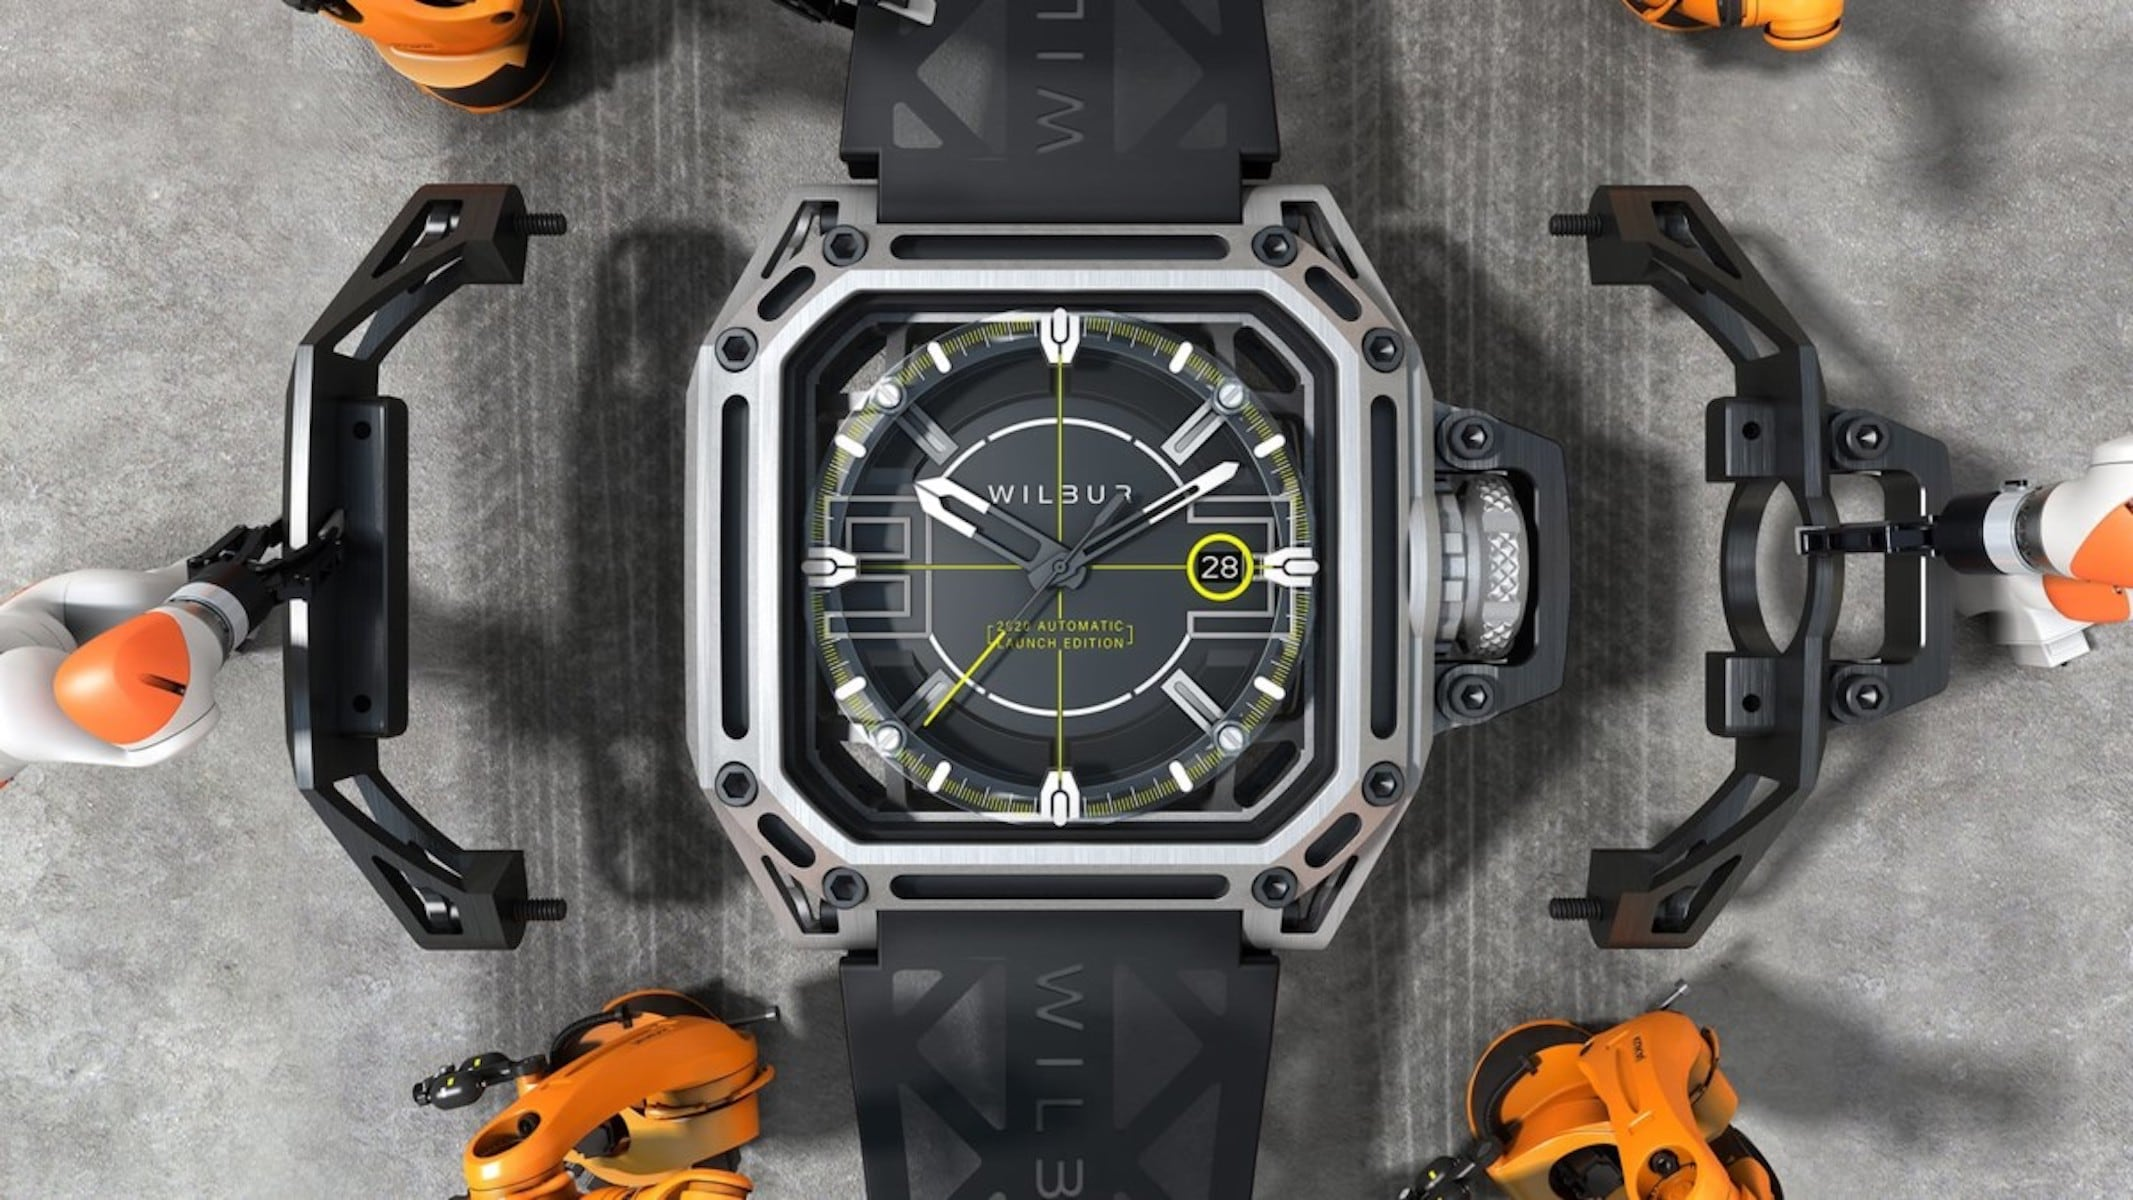 This limited edition watch focuses on the future, just like you